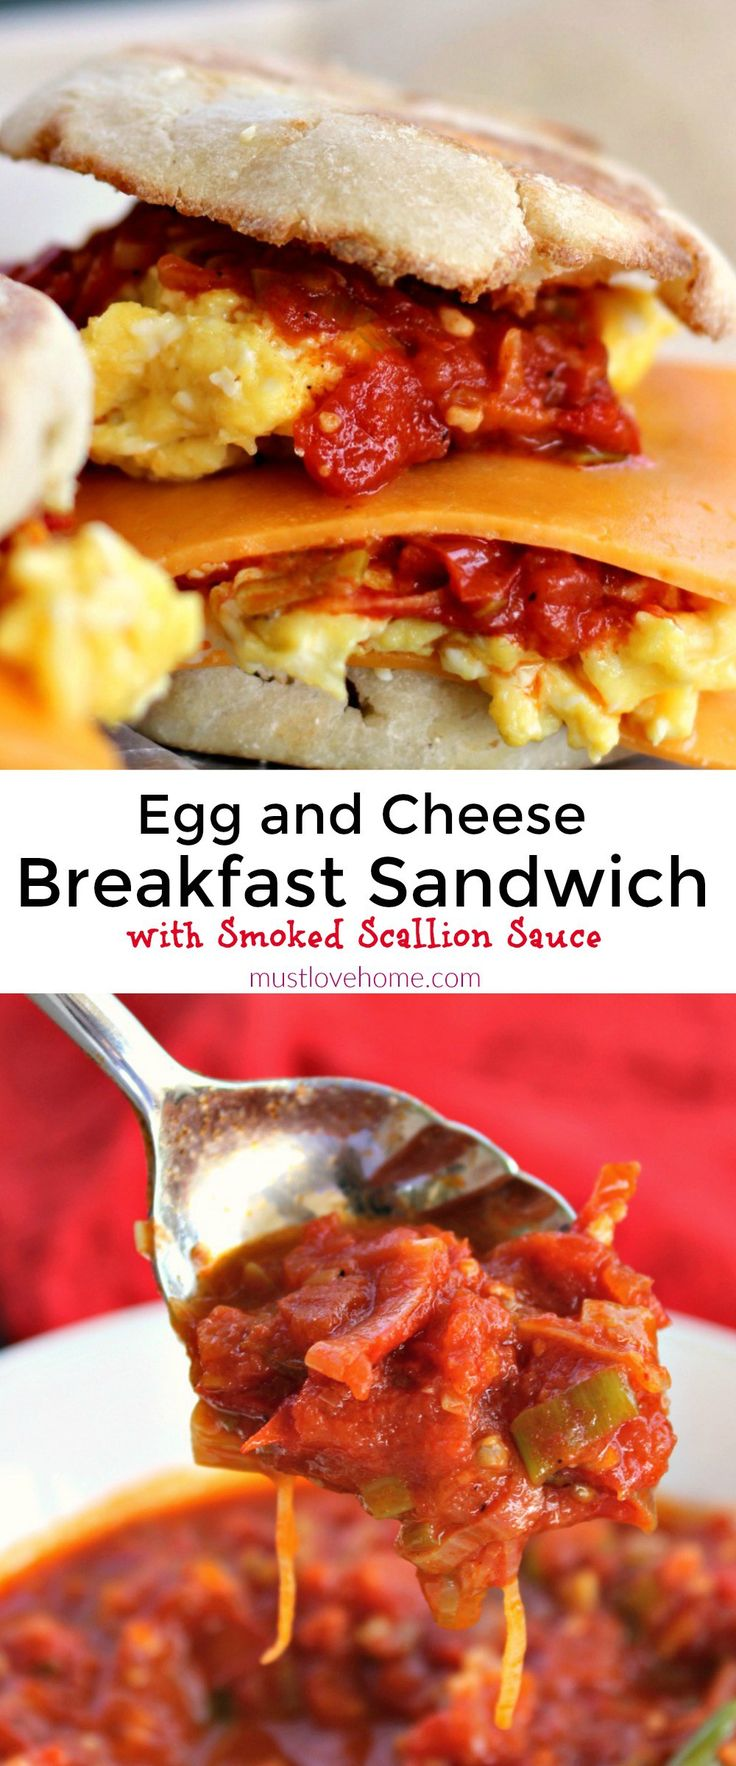 Egg and Cheese Breakfast Sandwich with Smoked Scallion Sauce is packed ...